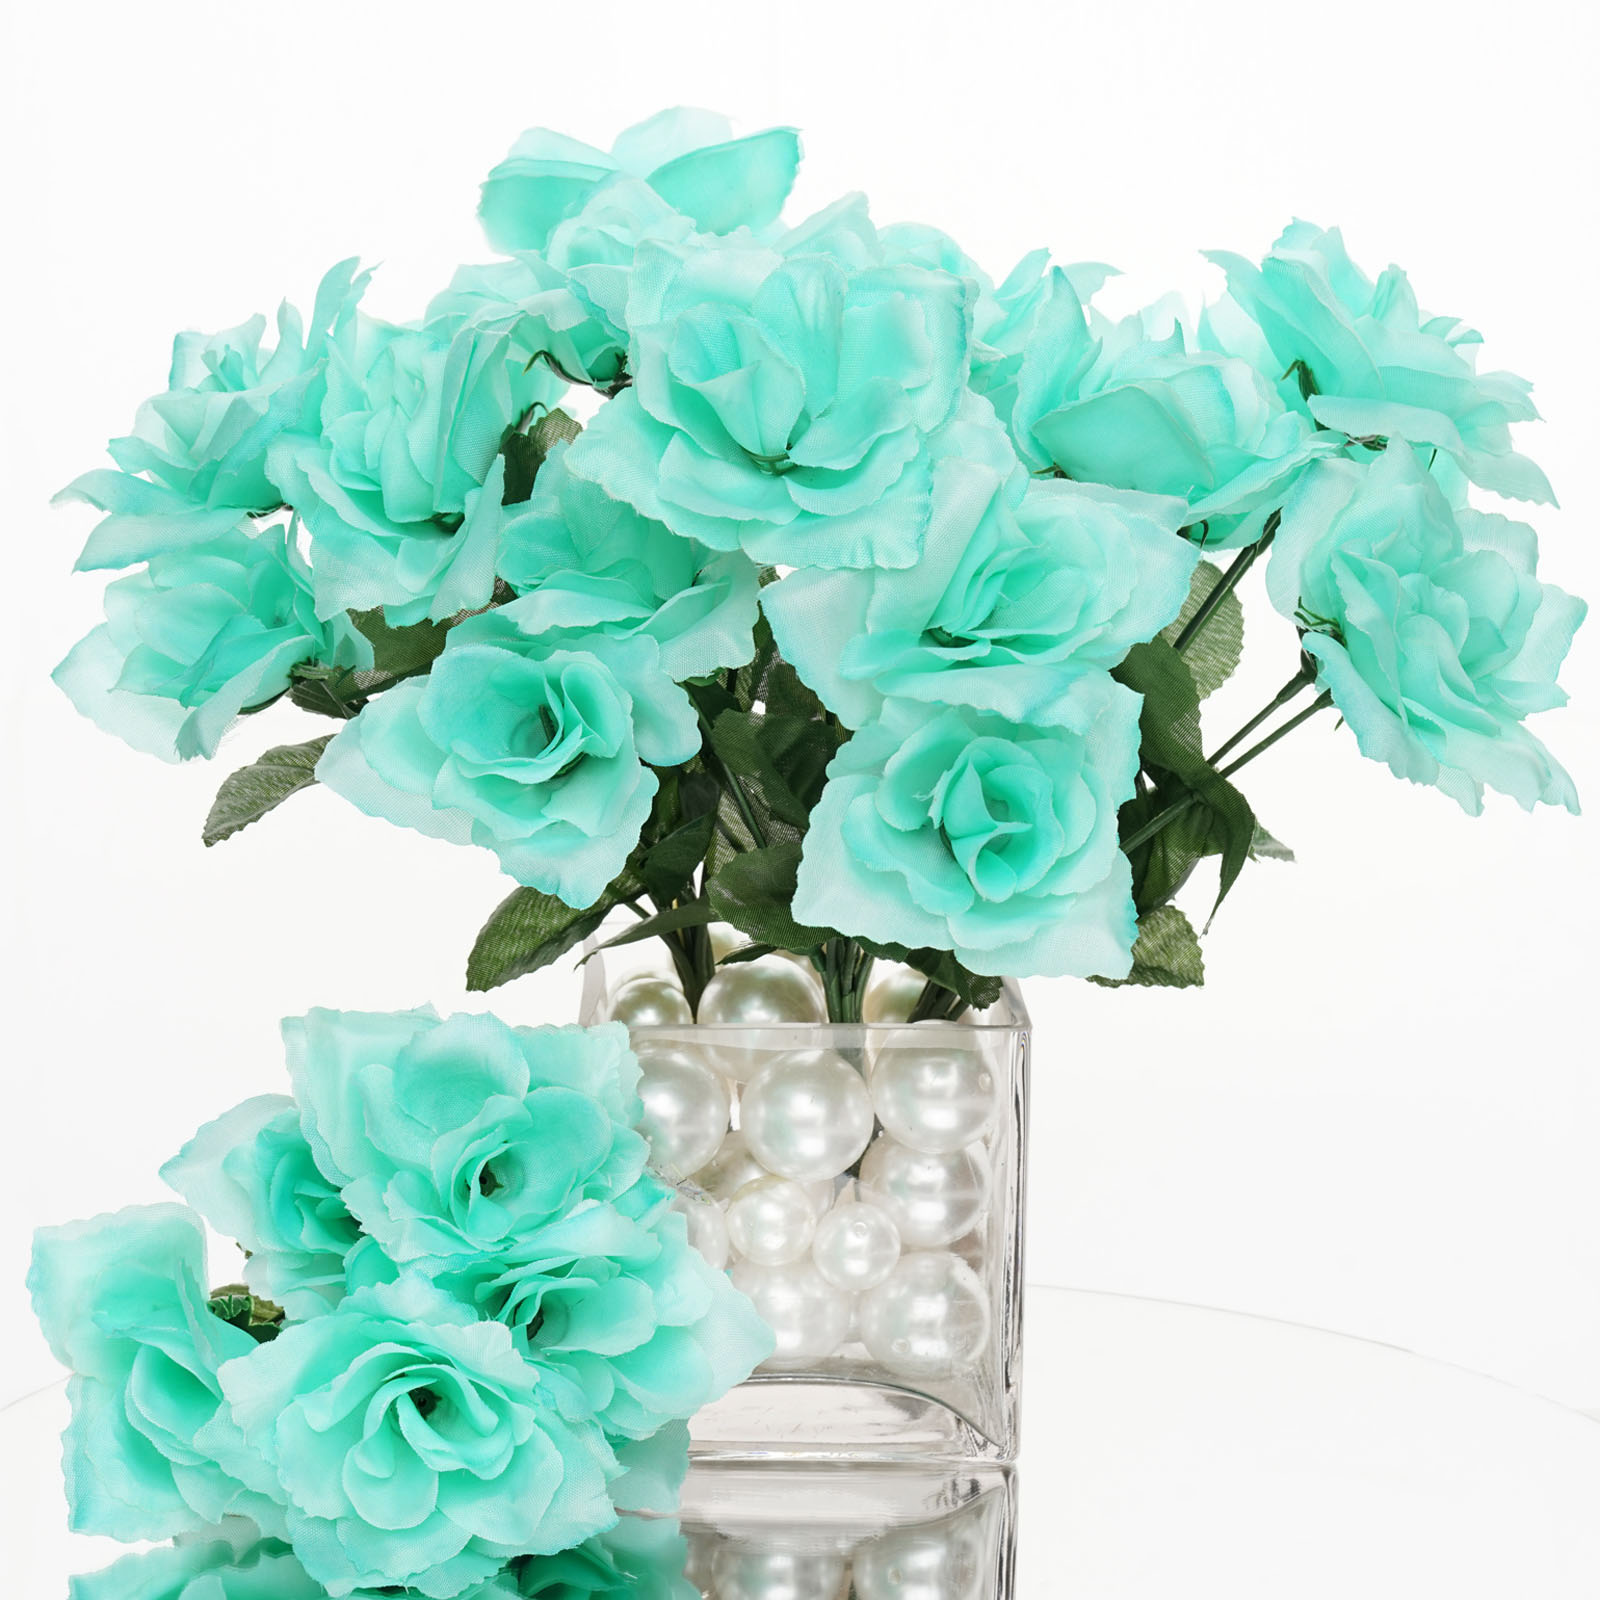 Exciting cheap wedding flowers bulk images design ideas dievoon arti84opnaqua02 exciting cheap wedding flowers bulk images design ideas decoration ideas izmirmasajfo